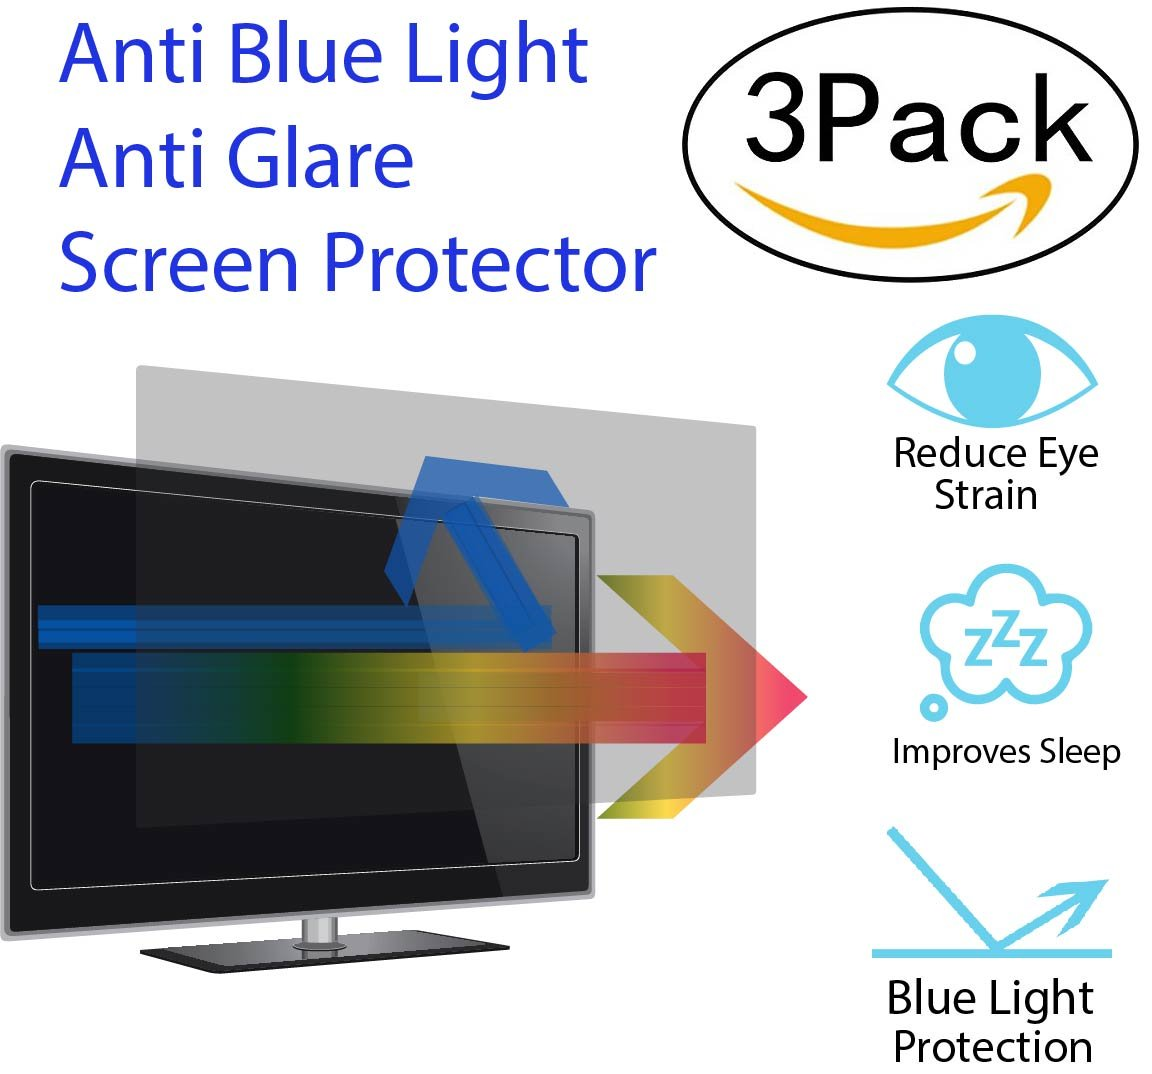 Premium Anti Blue Light and Anti Glare Screen Protector for 27 Inches Laptop with Aspect Ratio 16:09